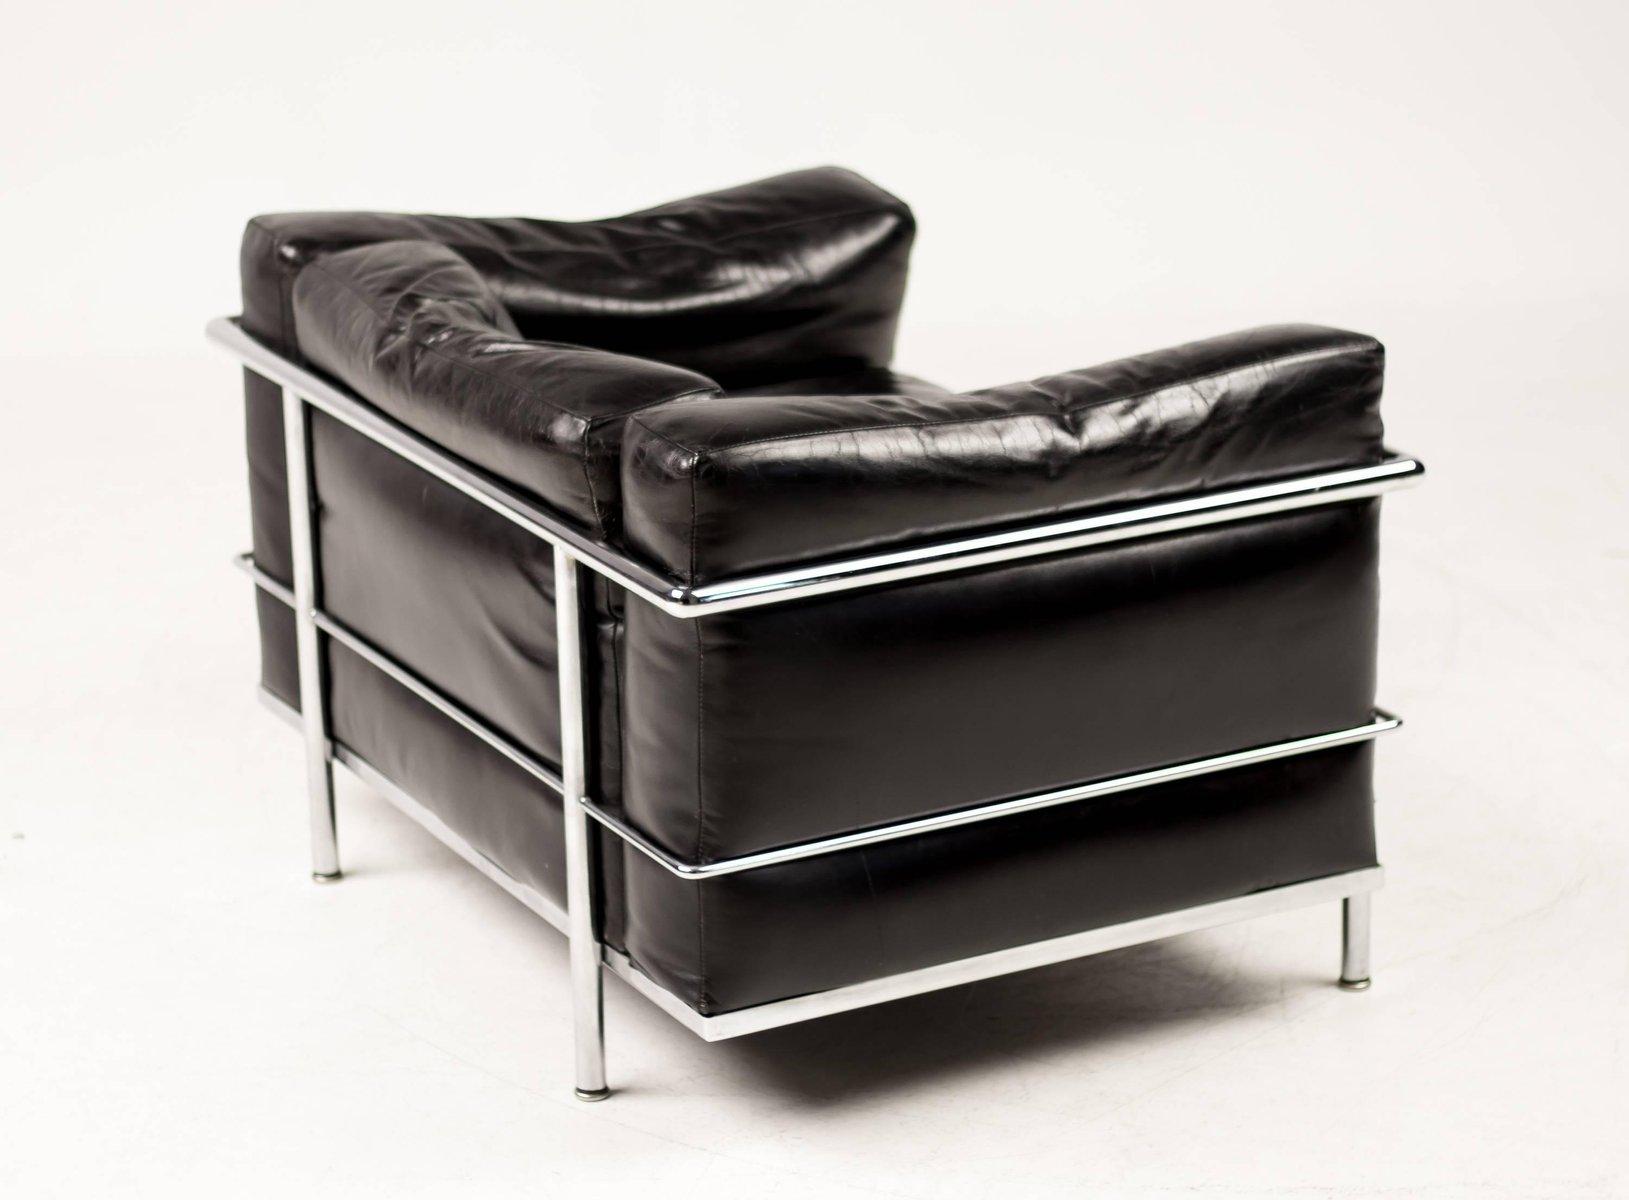 Lc3 Chair Lounge Chair By Le Corbusier For Cassina 1962